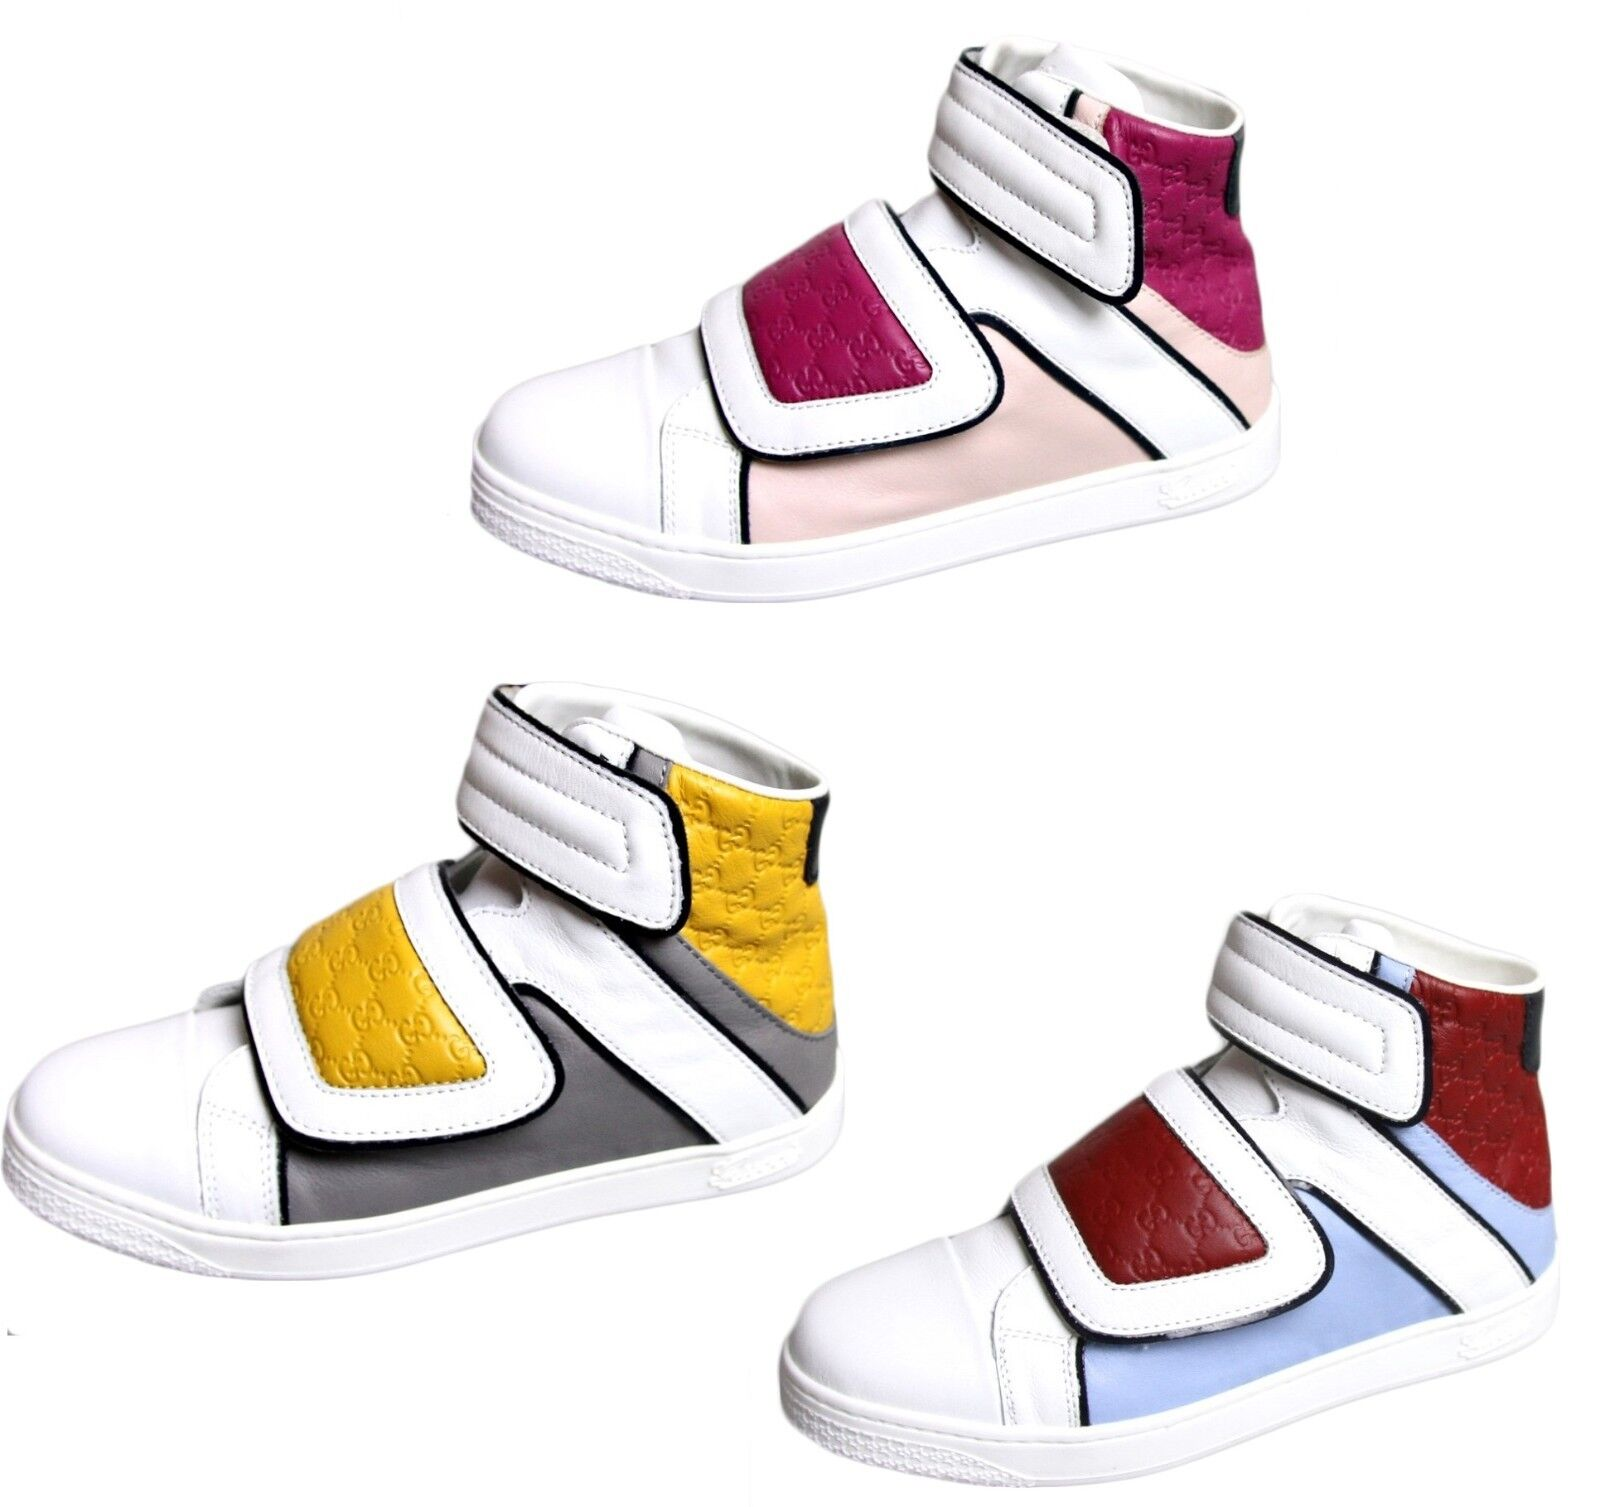 New Authentic Gucci Kids Leather Coda Pop High-top Sneaker 301353 301354